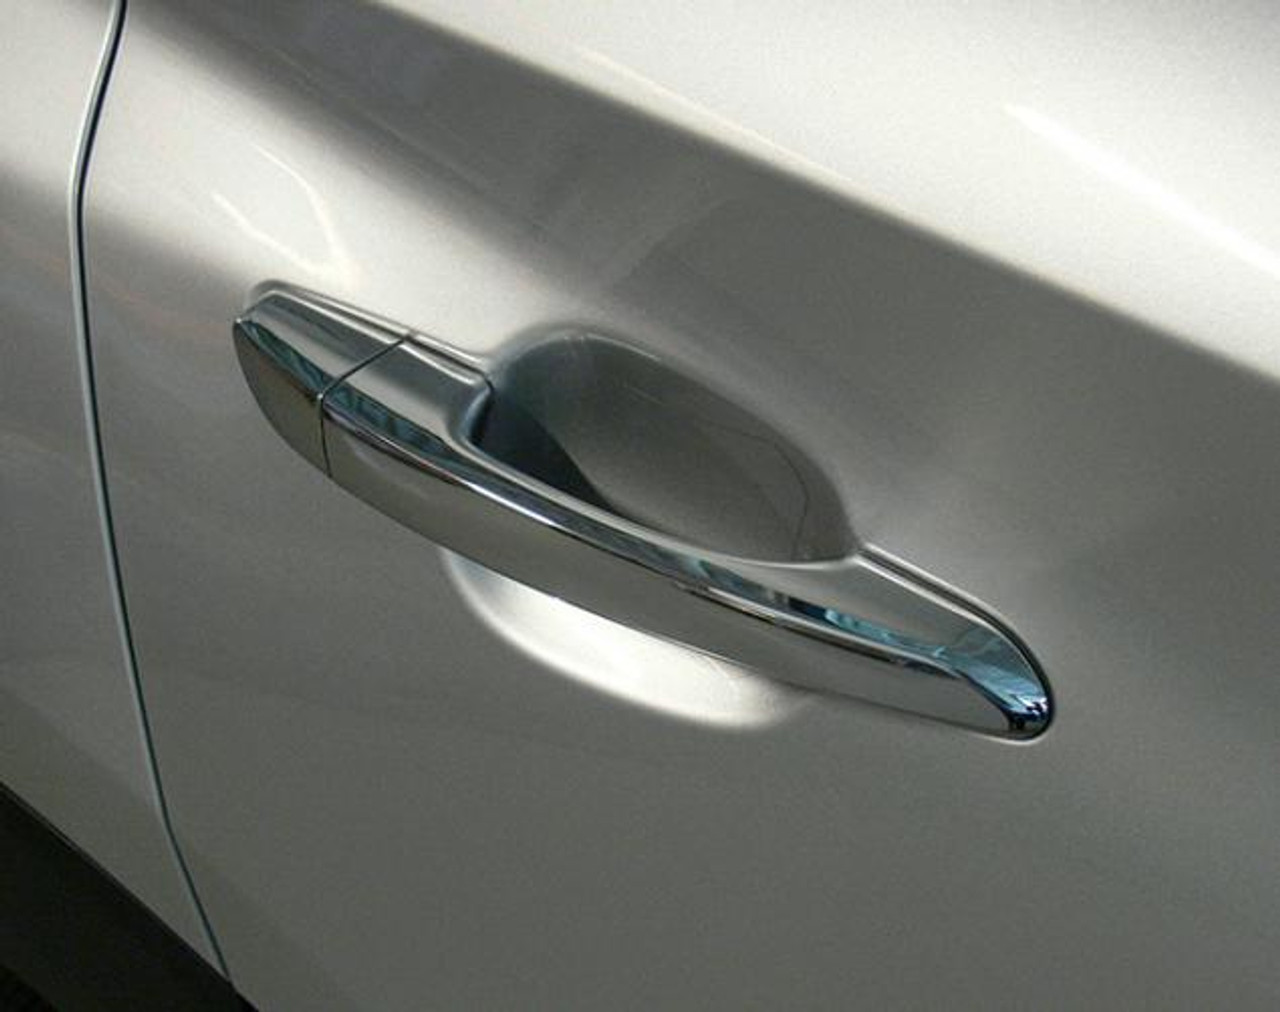 Hyundai Sonata Door Pocket Protector Films